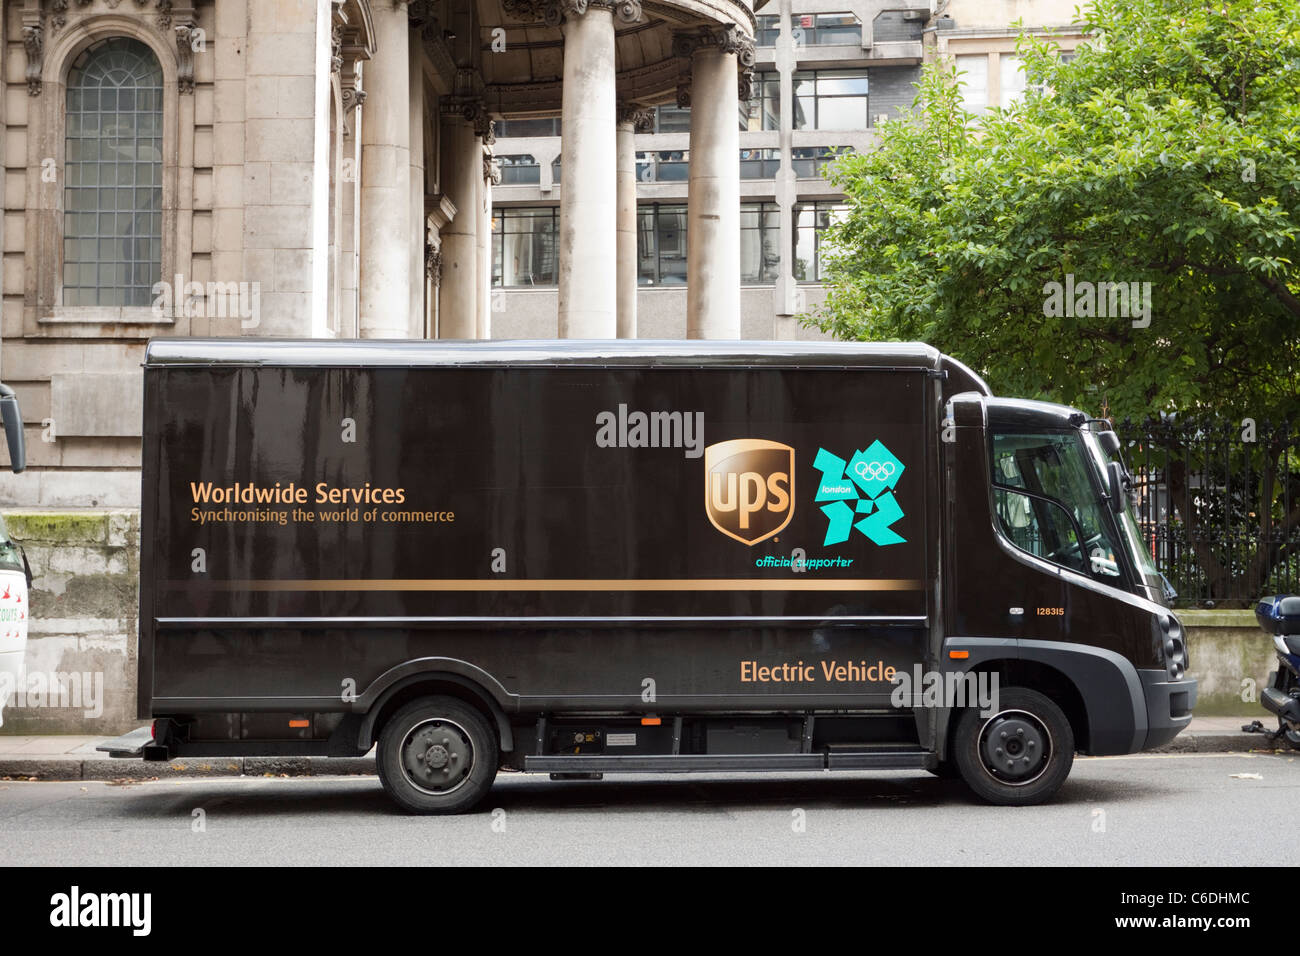 UPS parcel delivery truck, electric vehicle, London, England, UK - Stock Image